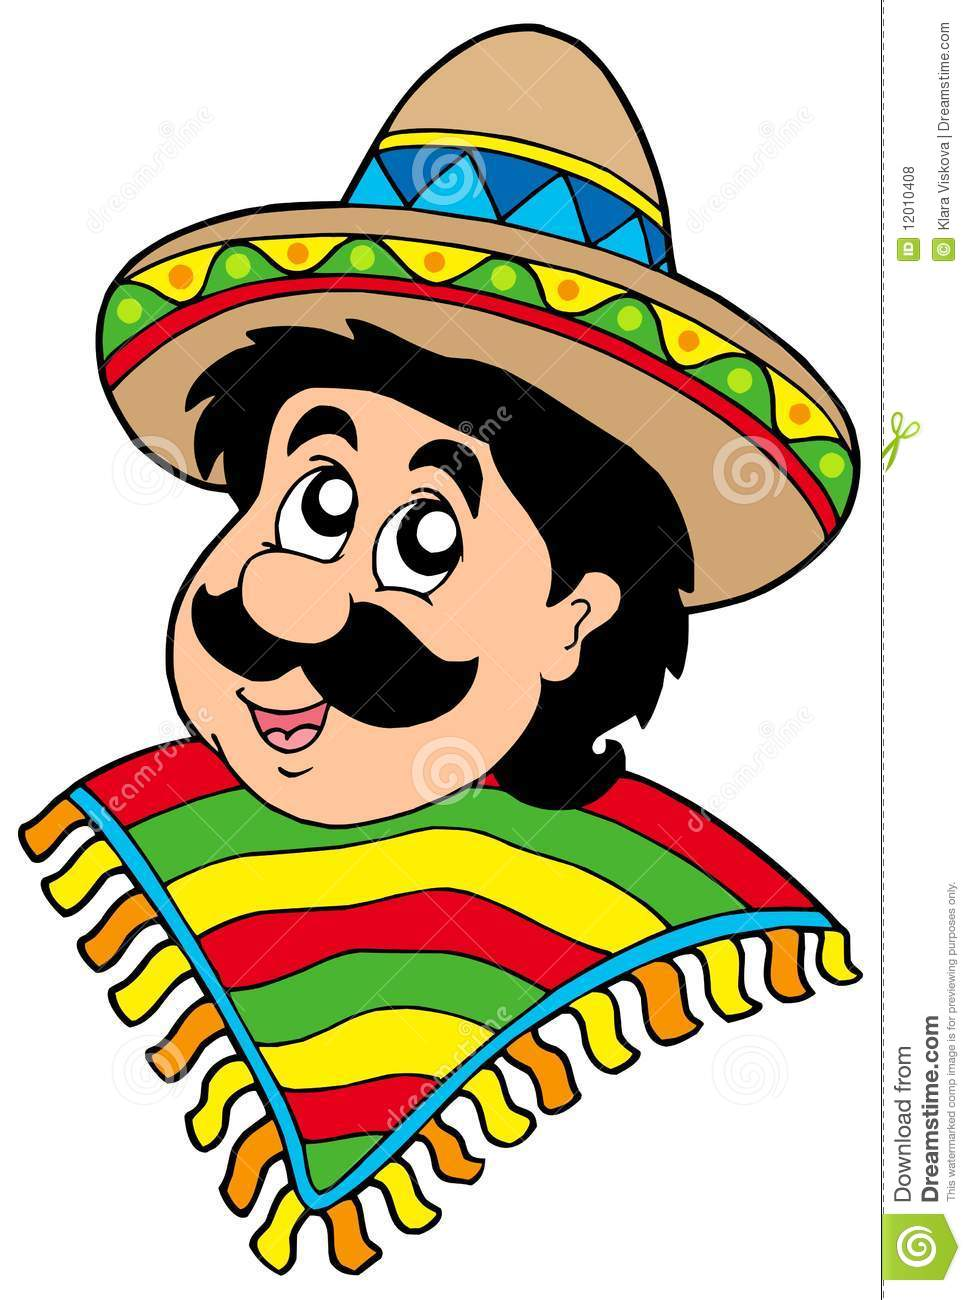 Portrait Of Mexican Man Royalty Free Stock Photos.